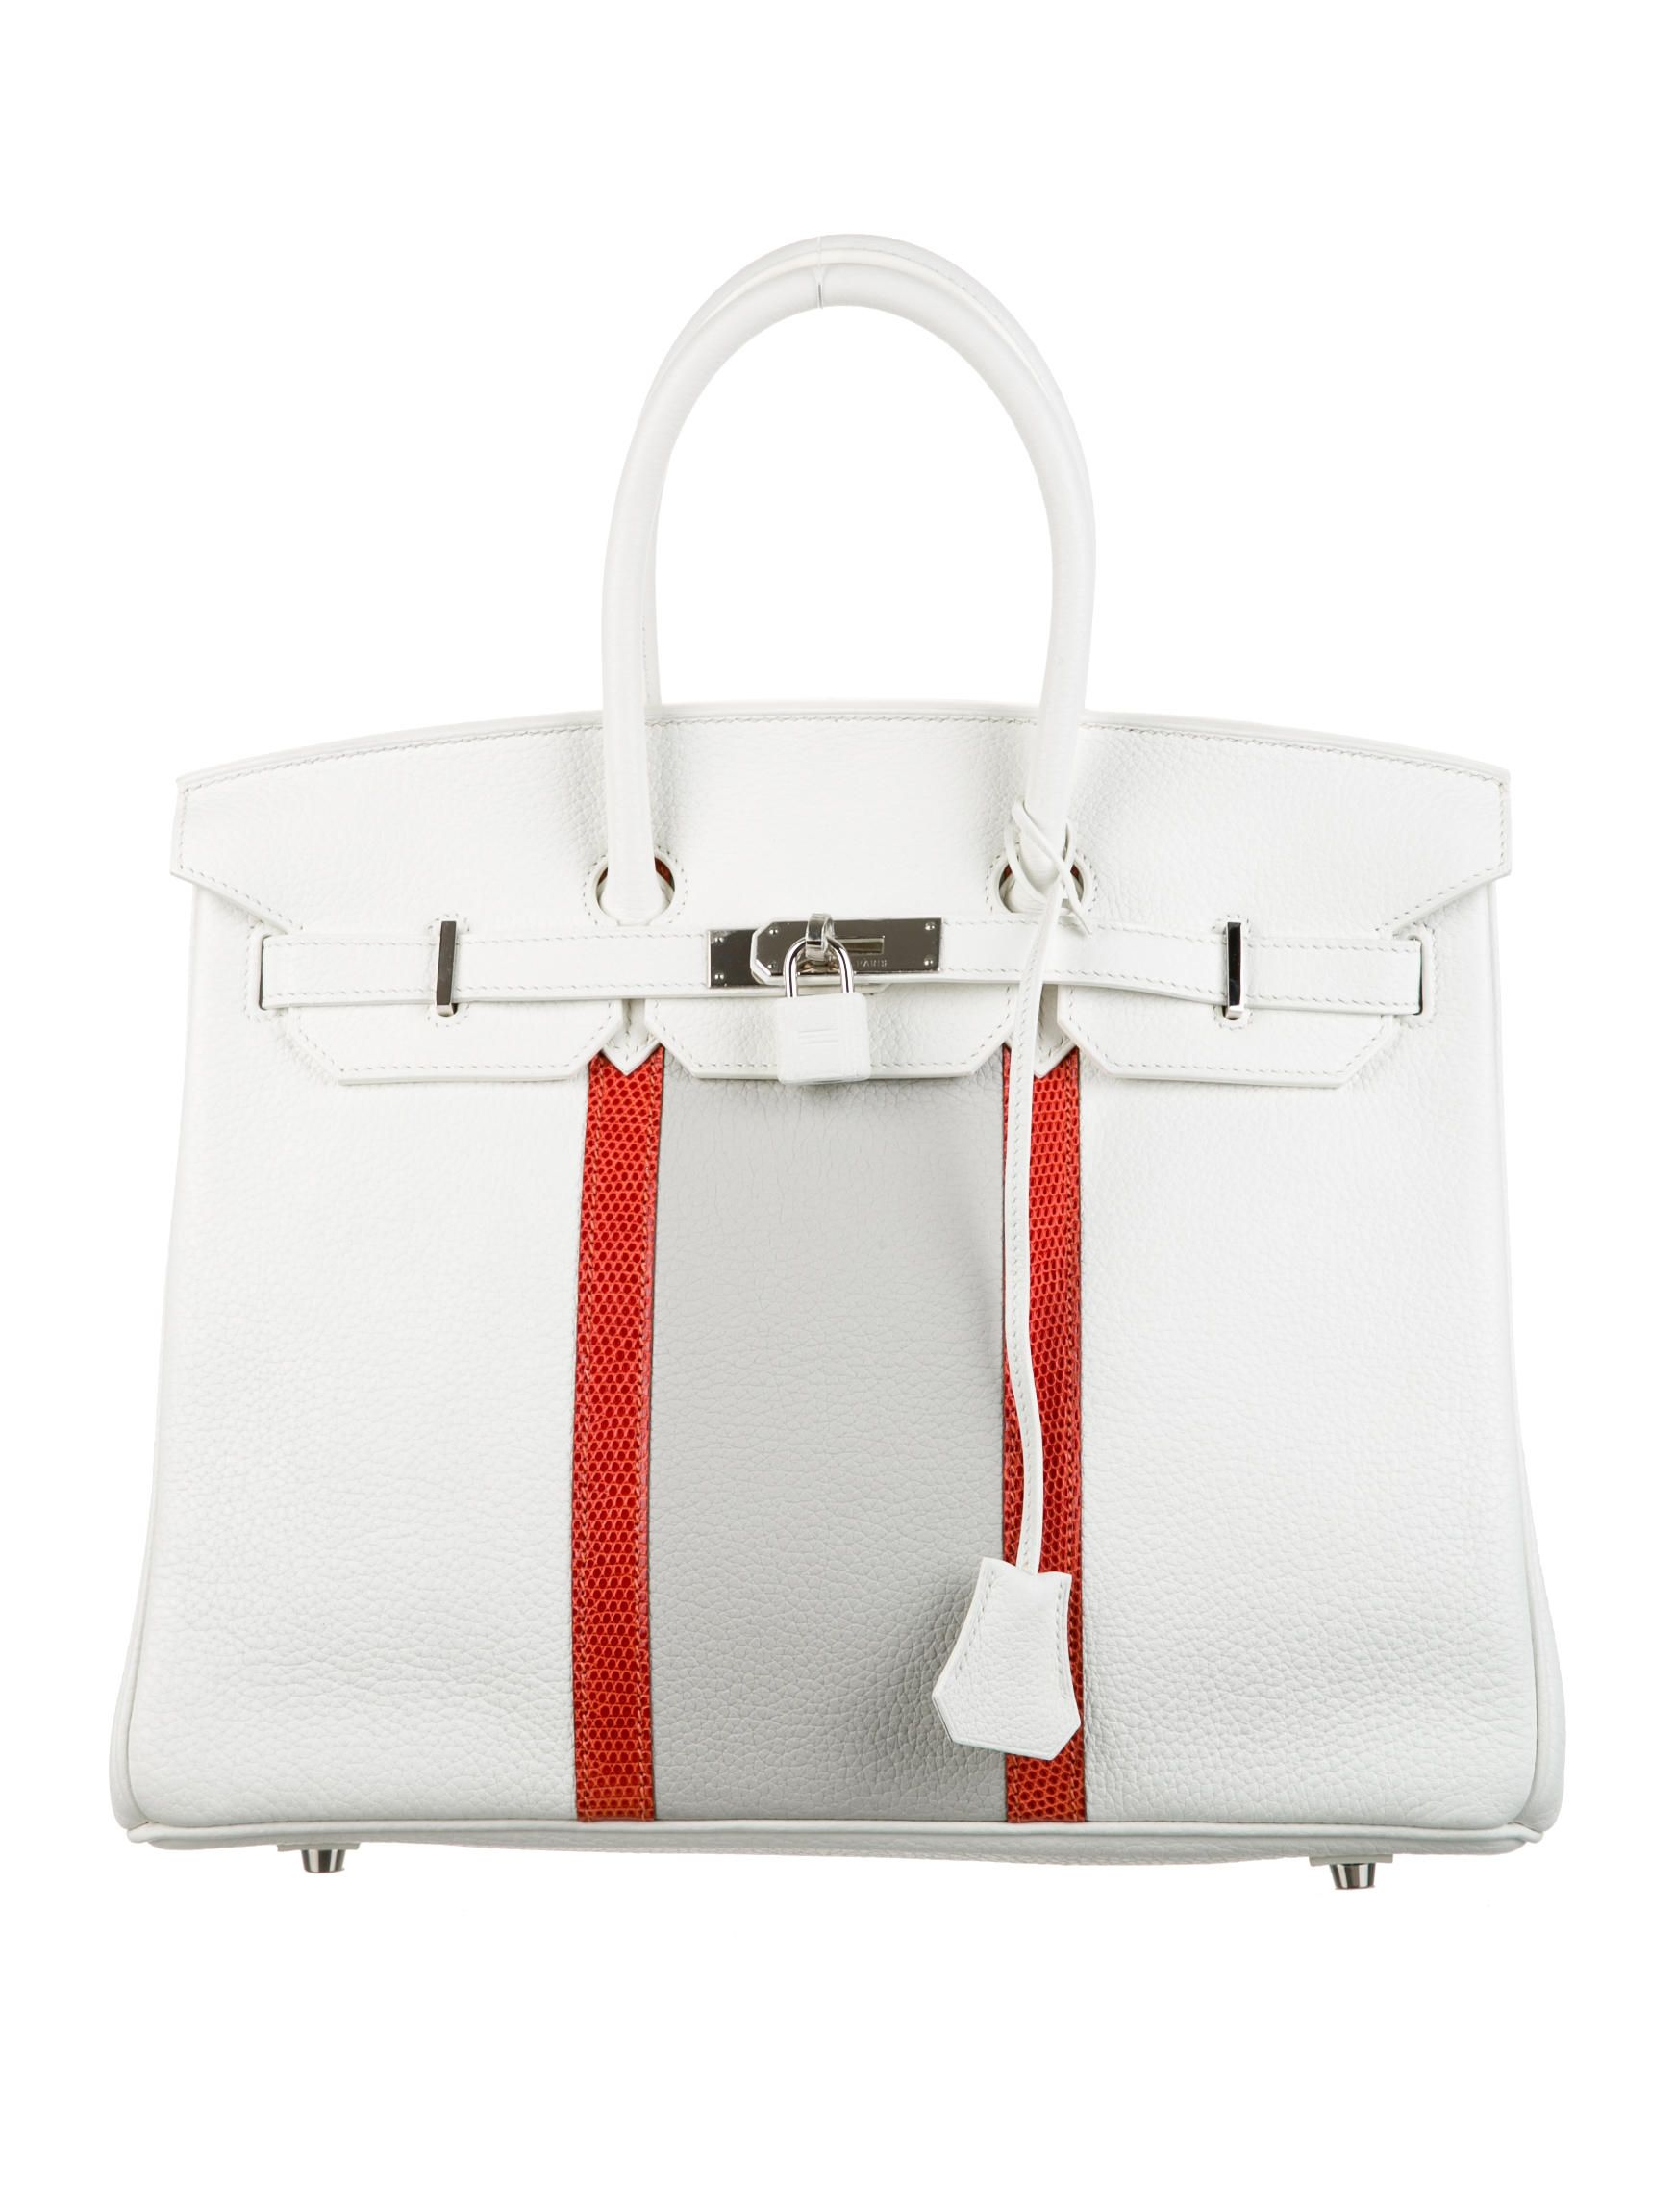 5c6cc2d47d72 White Clemence leather Hermès Club Birkin 35 with palladium hardware